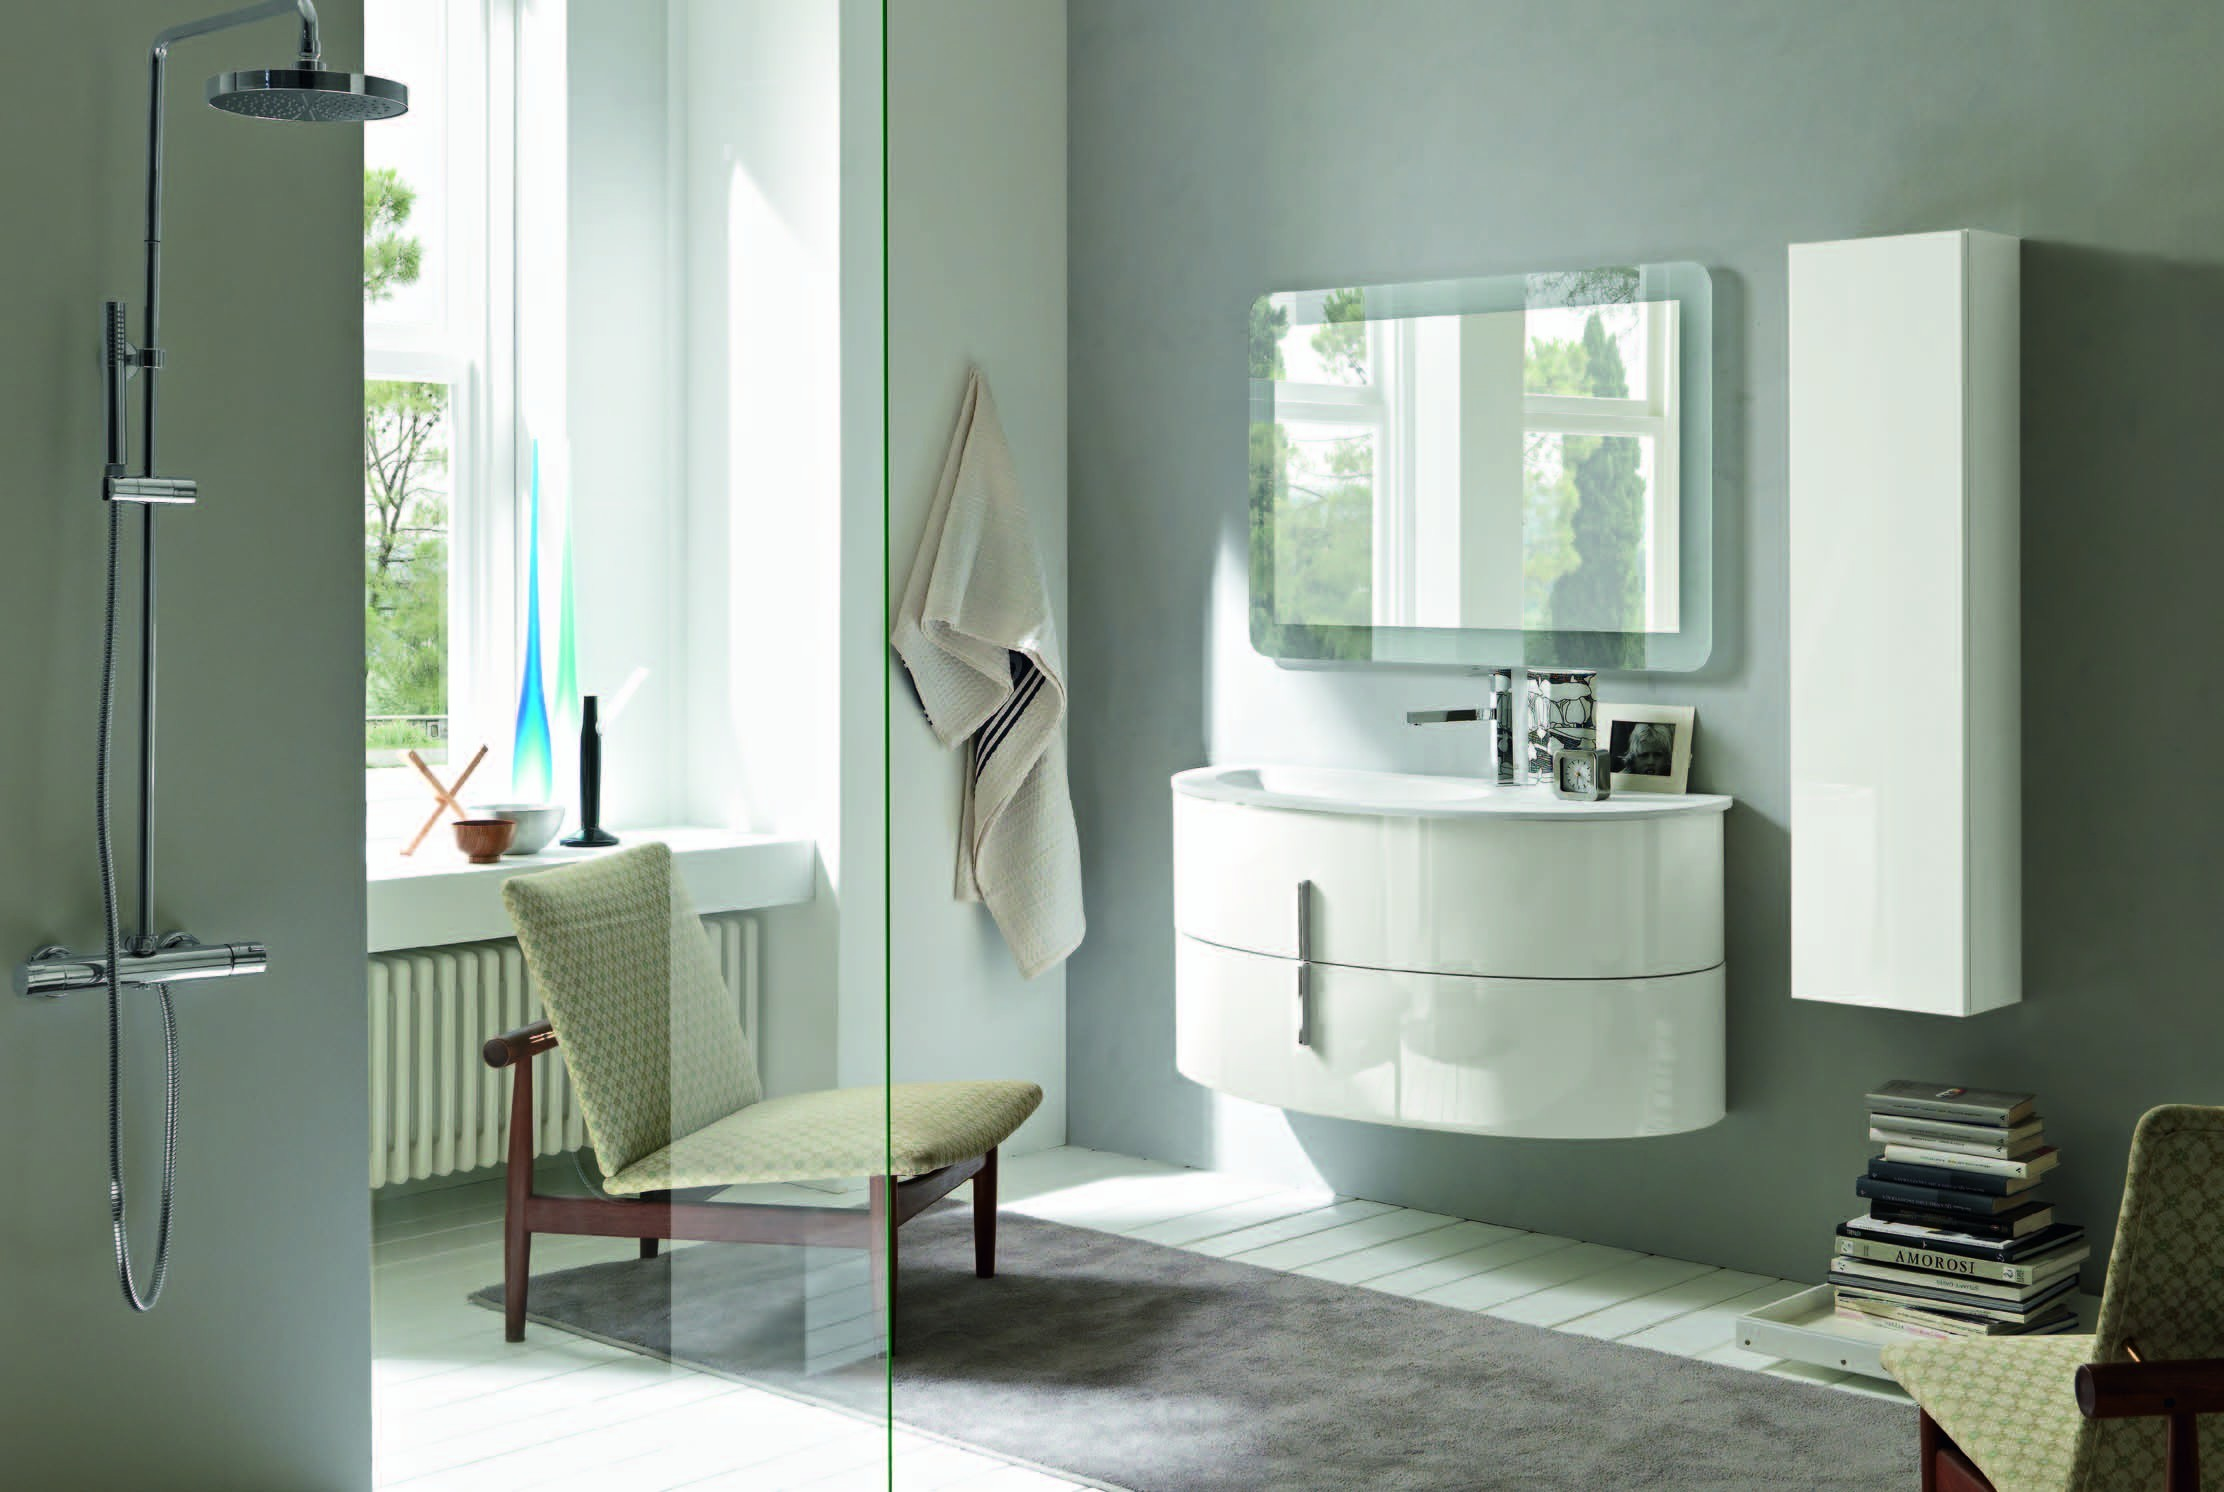 Mobile bagno design ovale con base lavello e colonna for Colonna sospesa bagno